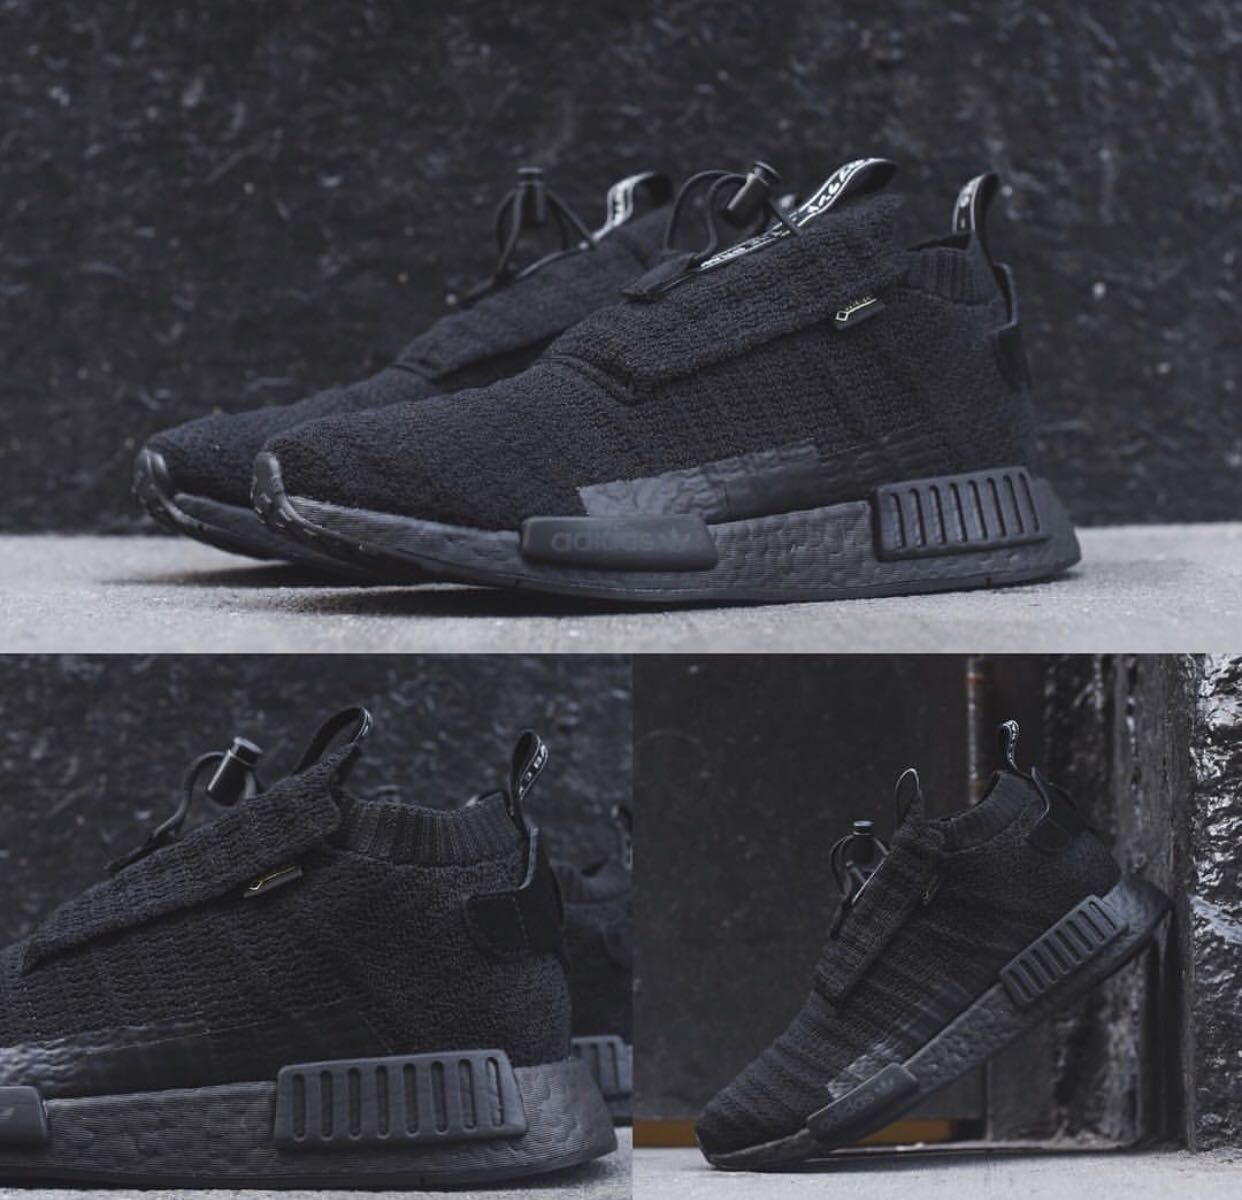 check out 402d3 be544 Adidas NMD TS1 Gore-Tex Primeknit Triple Black Shoe, Mens Fa